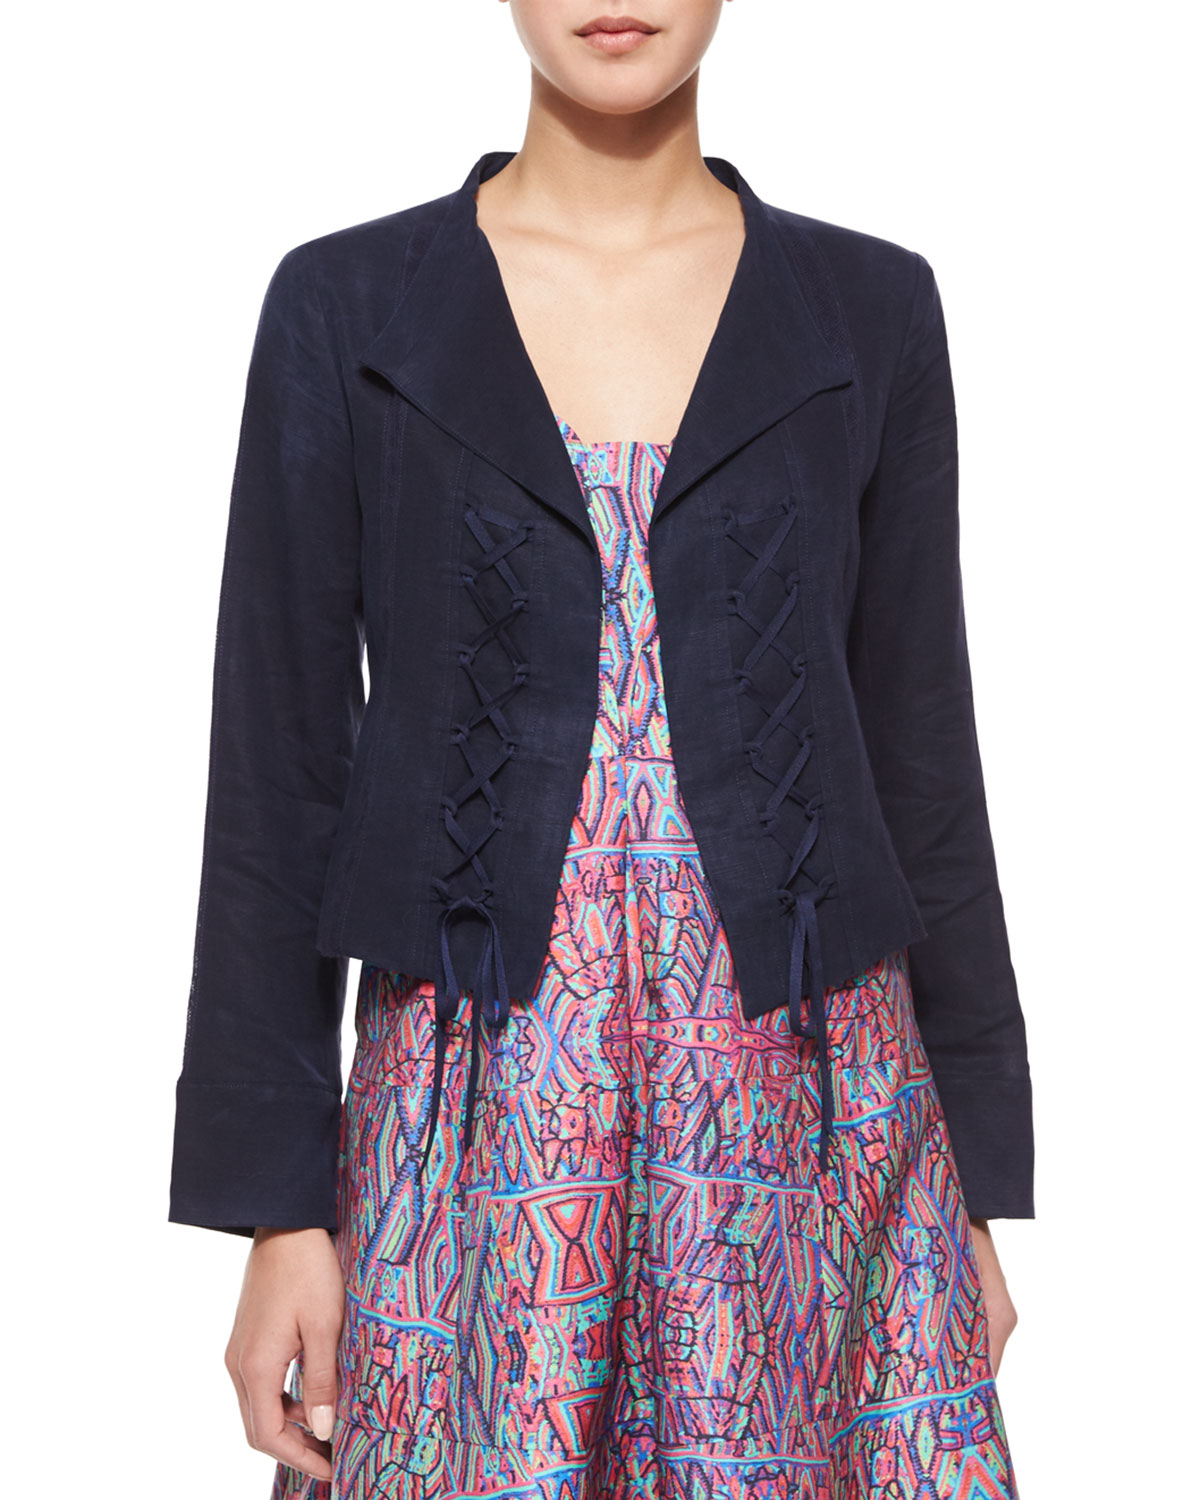 Angle Falls Structured Lace-Up Jacket